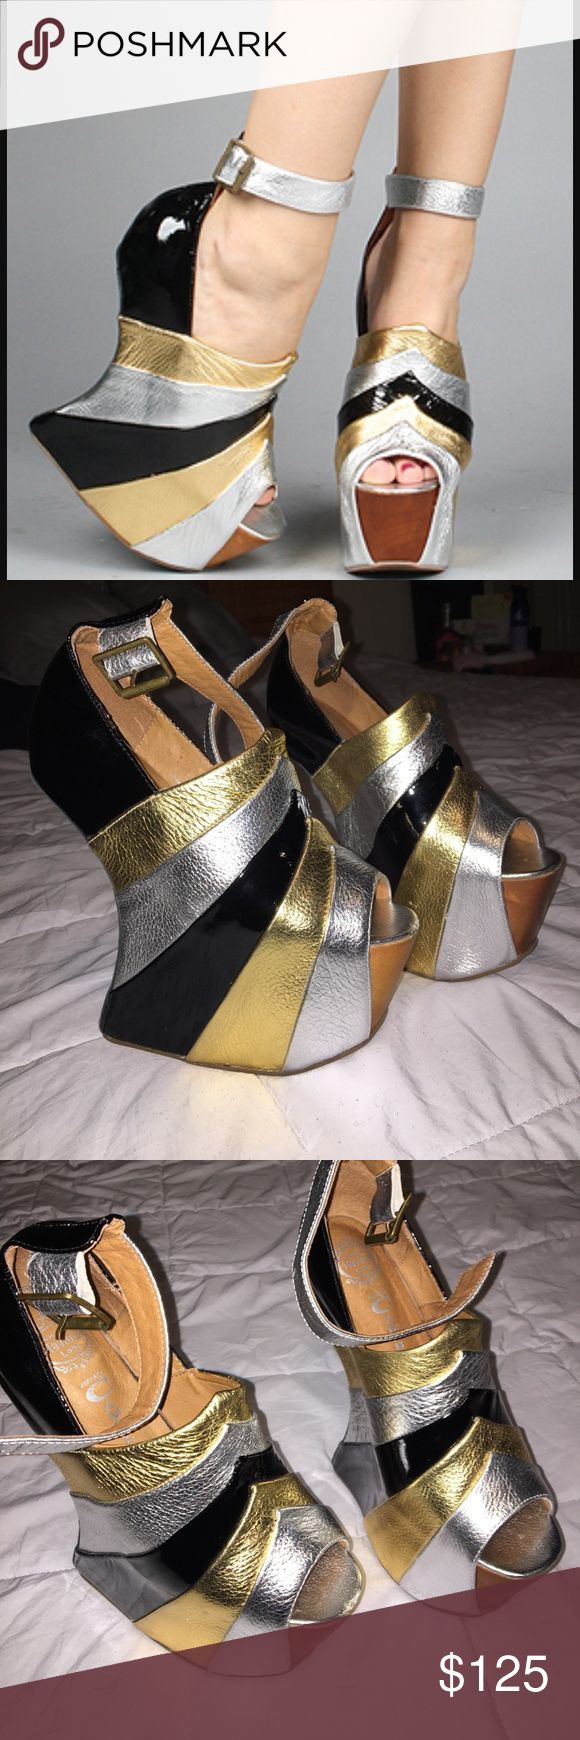 Jeffrey Campbell Rockstar Platforms Unique and edgy shoes! Worn once but have a small ding on the right toe! Silver, gold and black foiled design with ankle strap! z#0512 Jeffrey Campbell Shoes Platforms